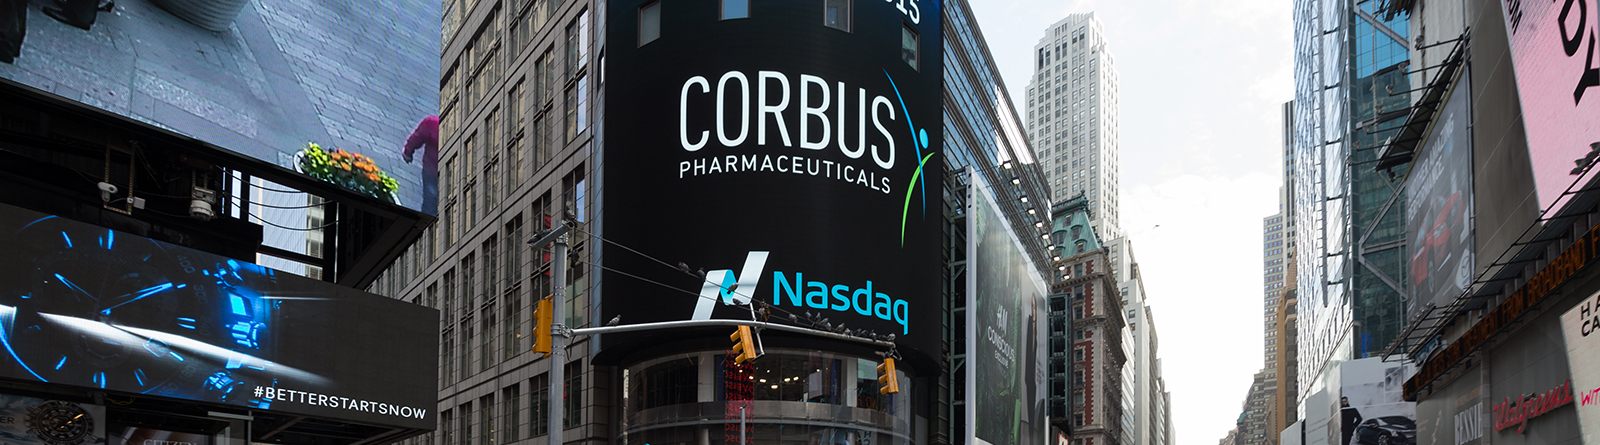 Corbus Pharmaceuticals Reports 2015 Financial Results and Provides 2016 Business Update Banner